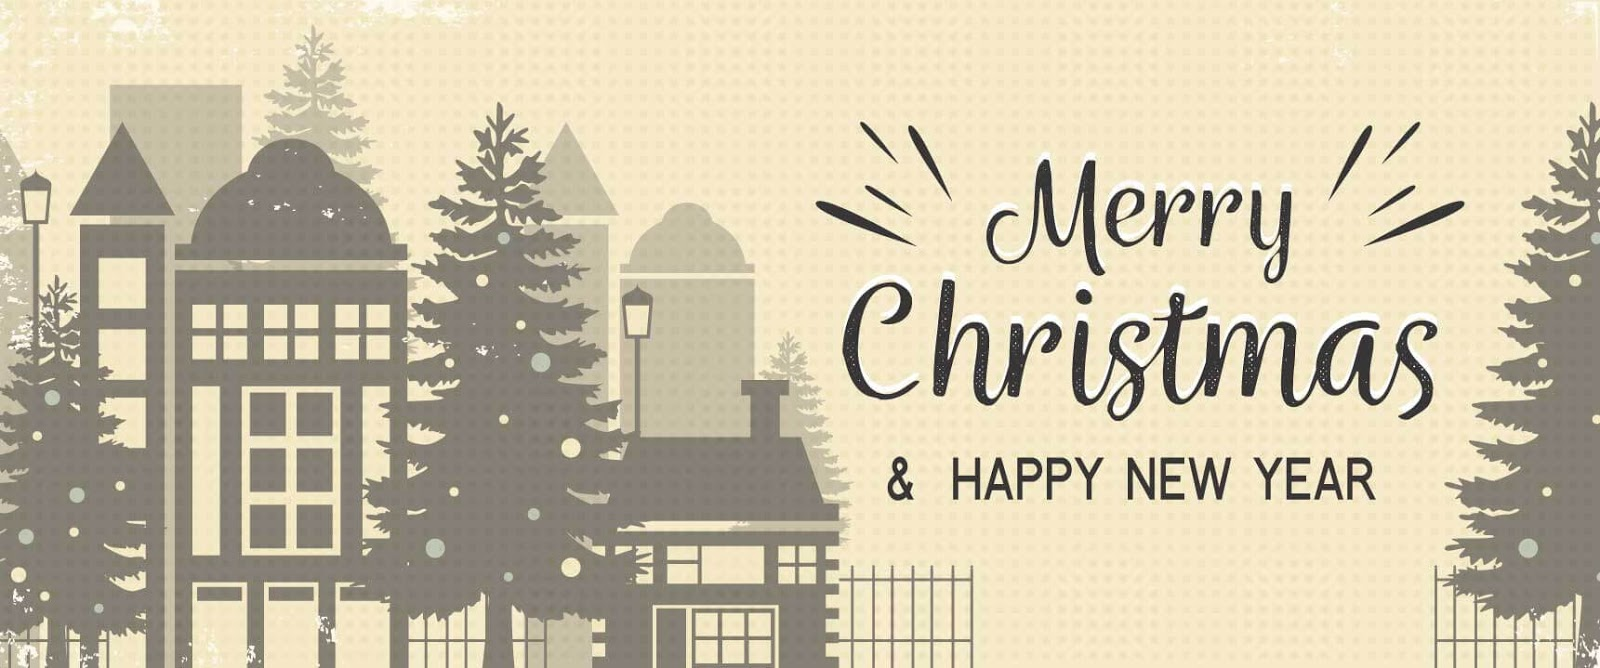 Christmas Banner Background Download Free